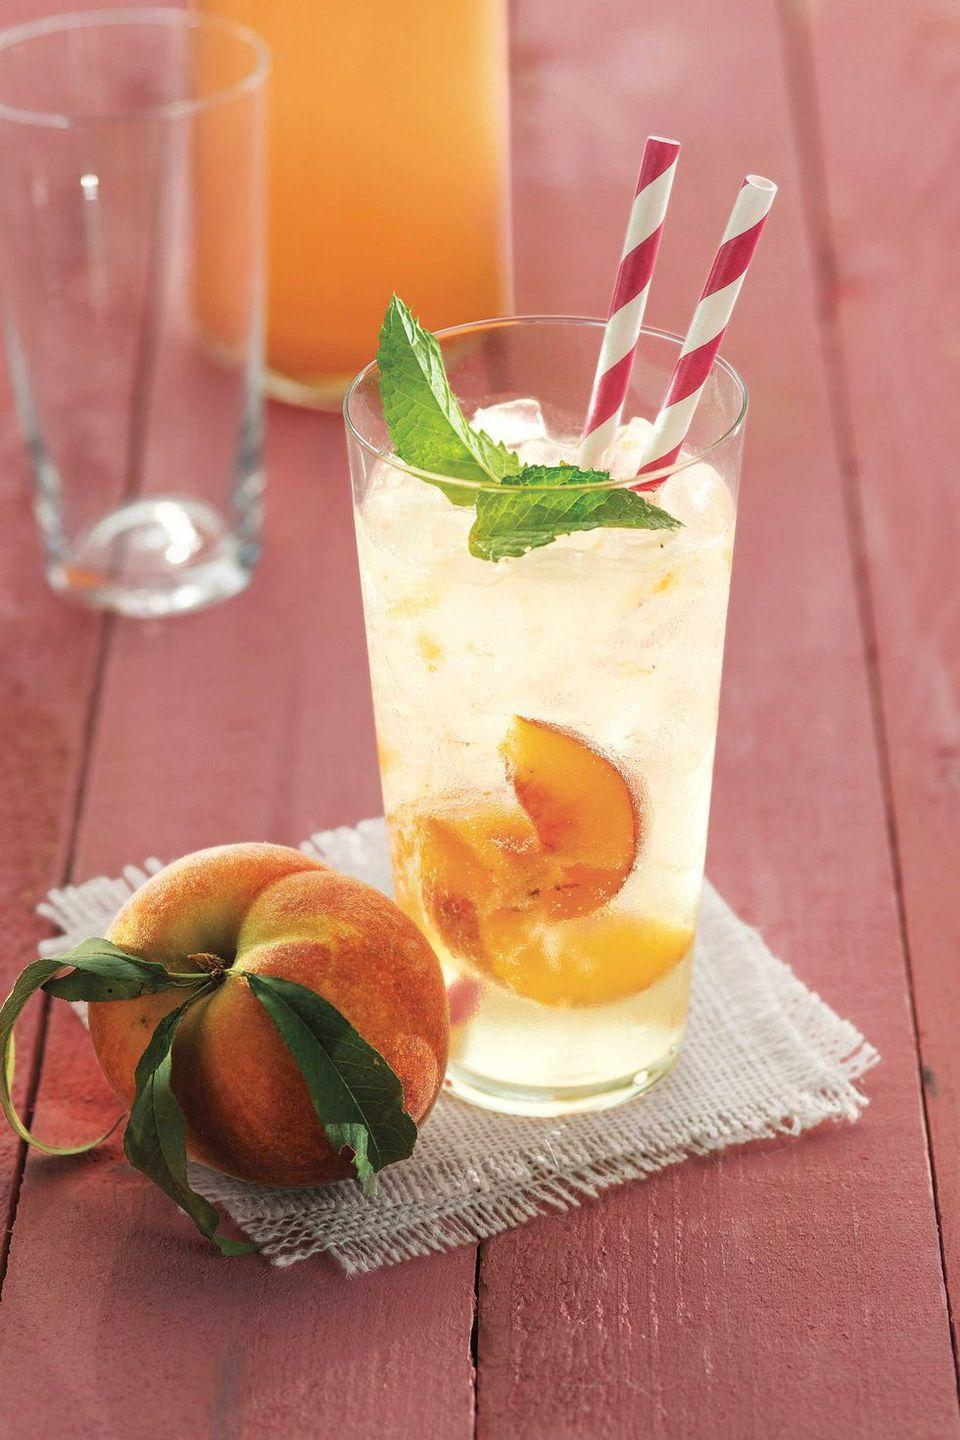 """<p>Since you're already mixing drinks for the adults at your party, give the kids something special to sip on with this made-from-scratch peach drink. (If adults want to join in on the fun, just add a splash of rum.)</p><p><em><a href=""""https://www.countryliving.com/food-drinks/recipes/a4421/ginger-peach-soda-recipe-clv0613/"""" rel=""""nofollow noopener"""" target=""""_blank"""" data-ylk=""""slk:Get the recipe from Country Living »"""" class=""""link rapid-noclick-resp"""">Get the recipe from Country Living »</a></em></p>"""